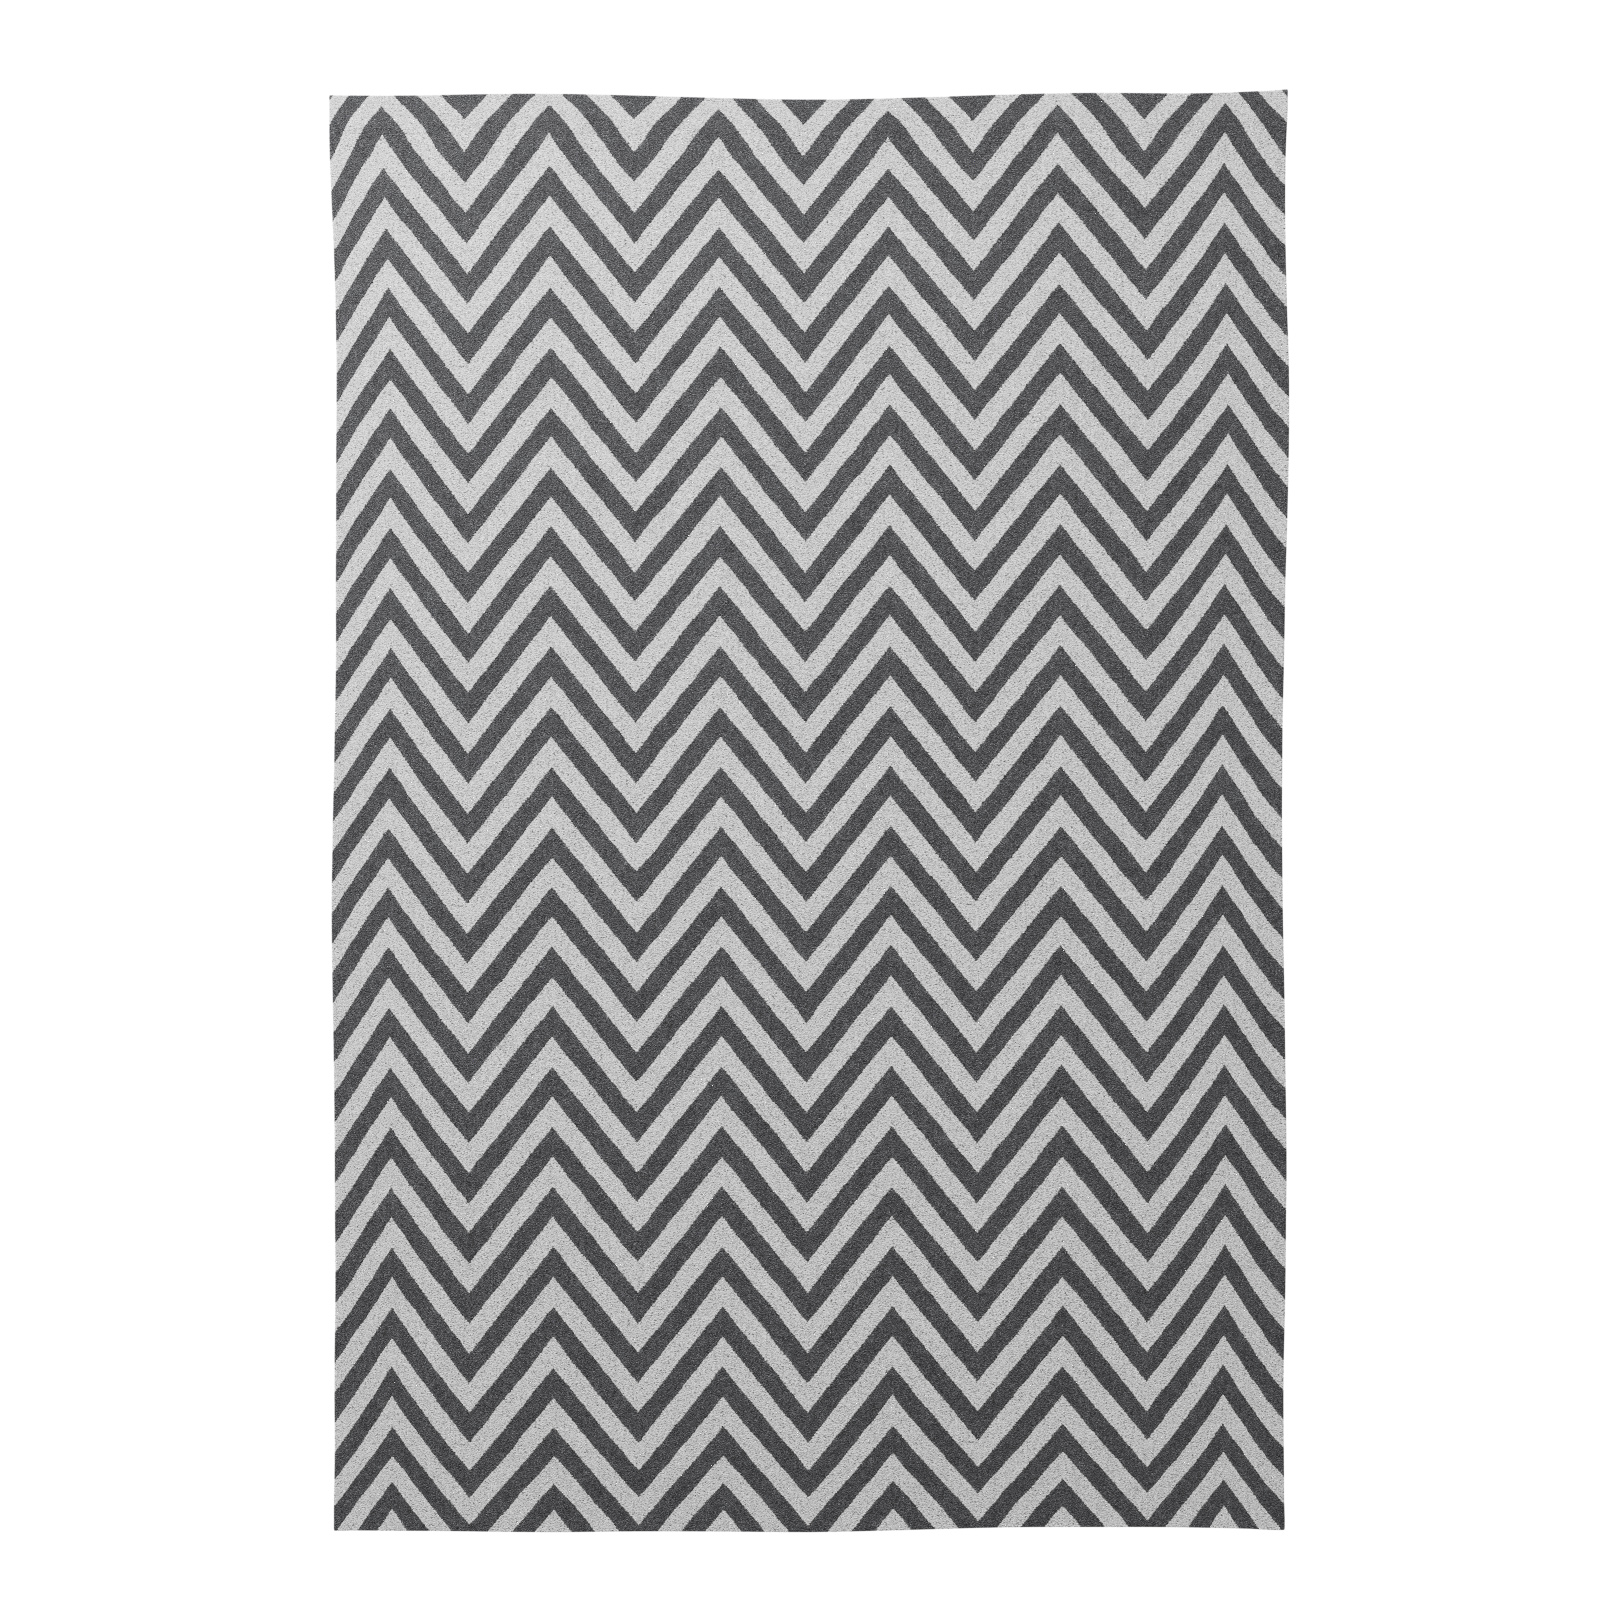 RugDesignerChevron001_preview1.jpg